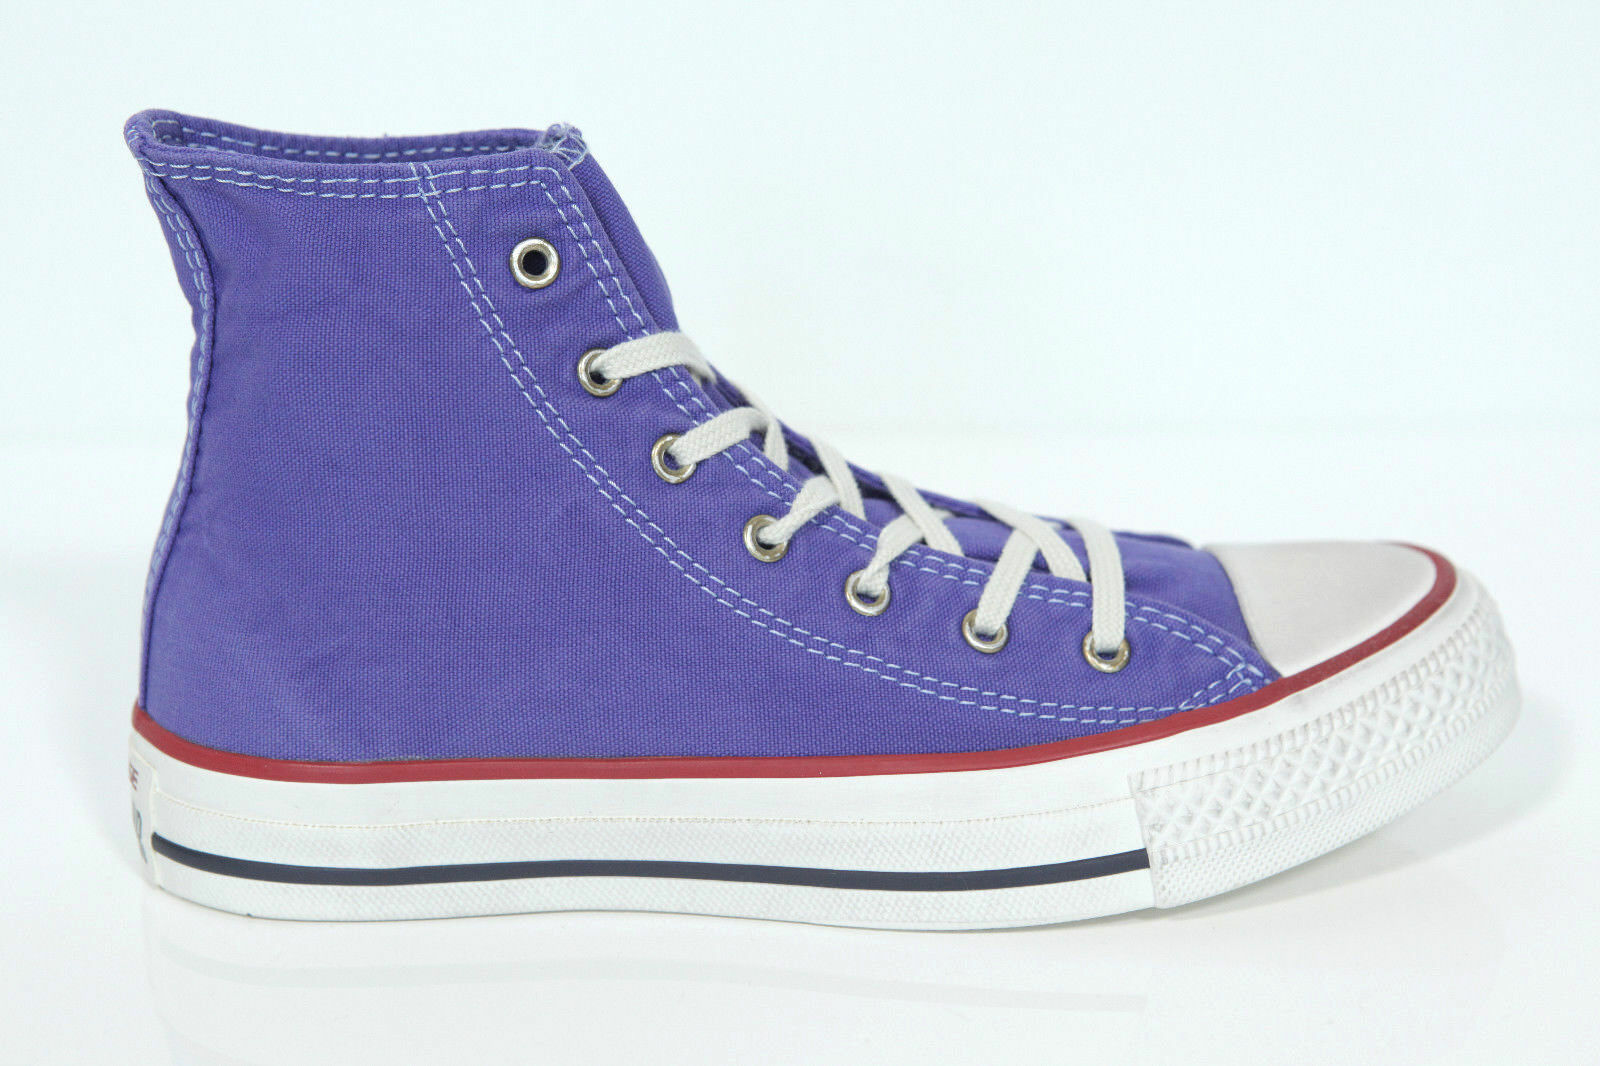 be50d6112e87d3 ... Neu All Star Converse Chucks Hi Washed Nightshade 142629c 142629c  142629c Turnschuhe Retro